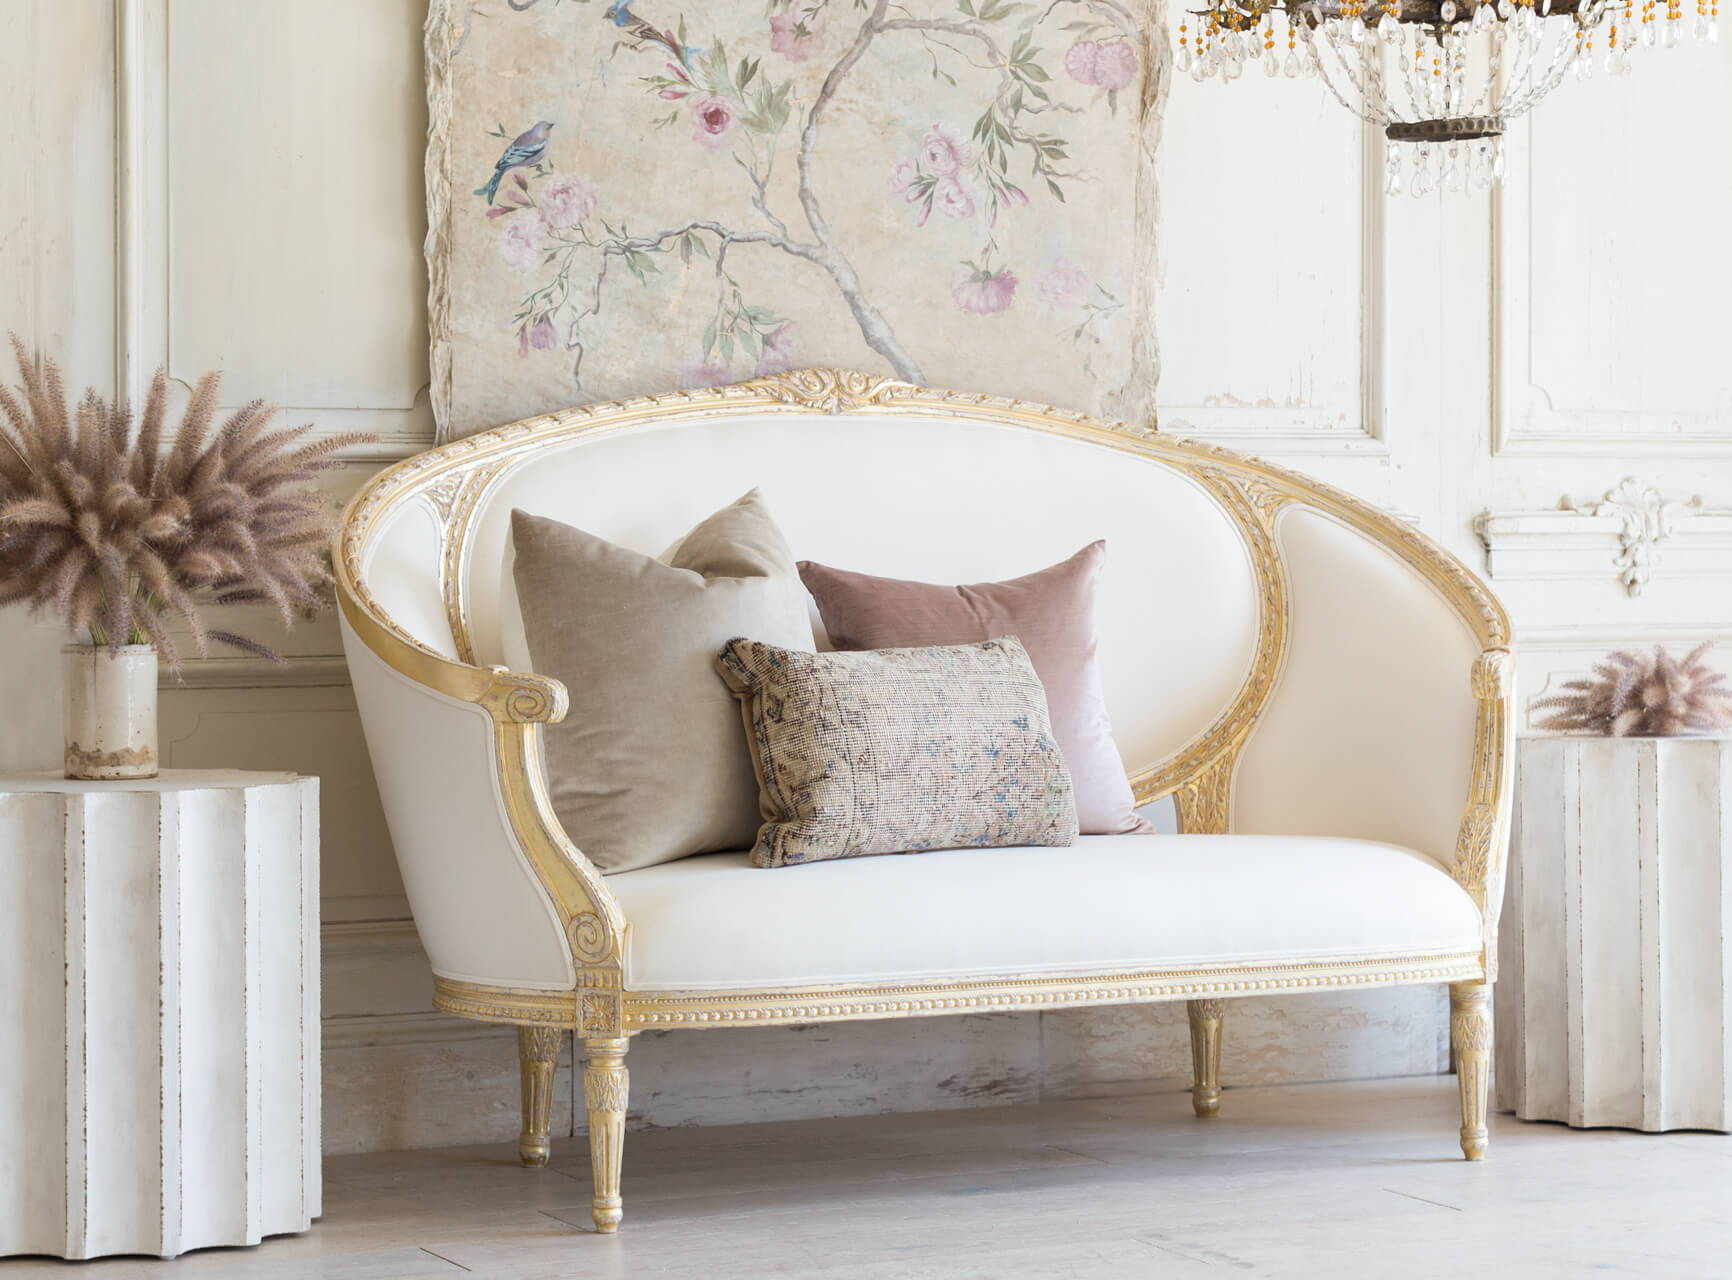 Eloquence® Versailles Canape in White Linen and Gold Leaf Finish